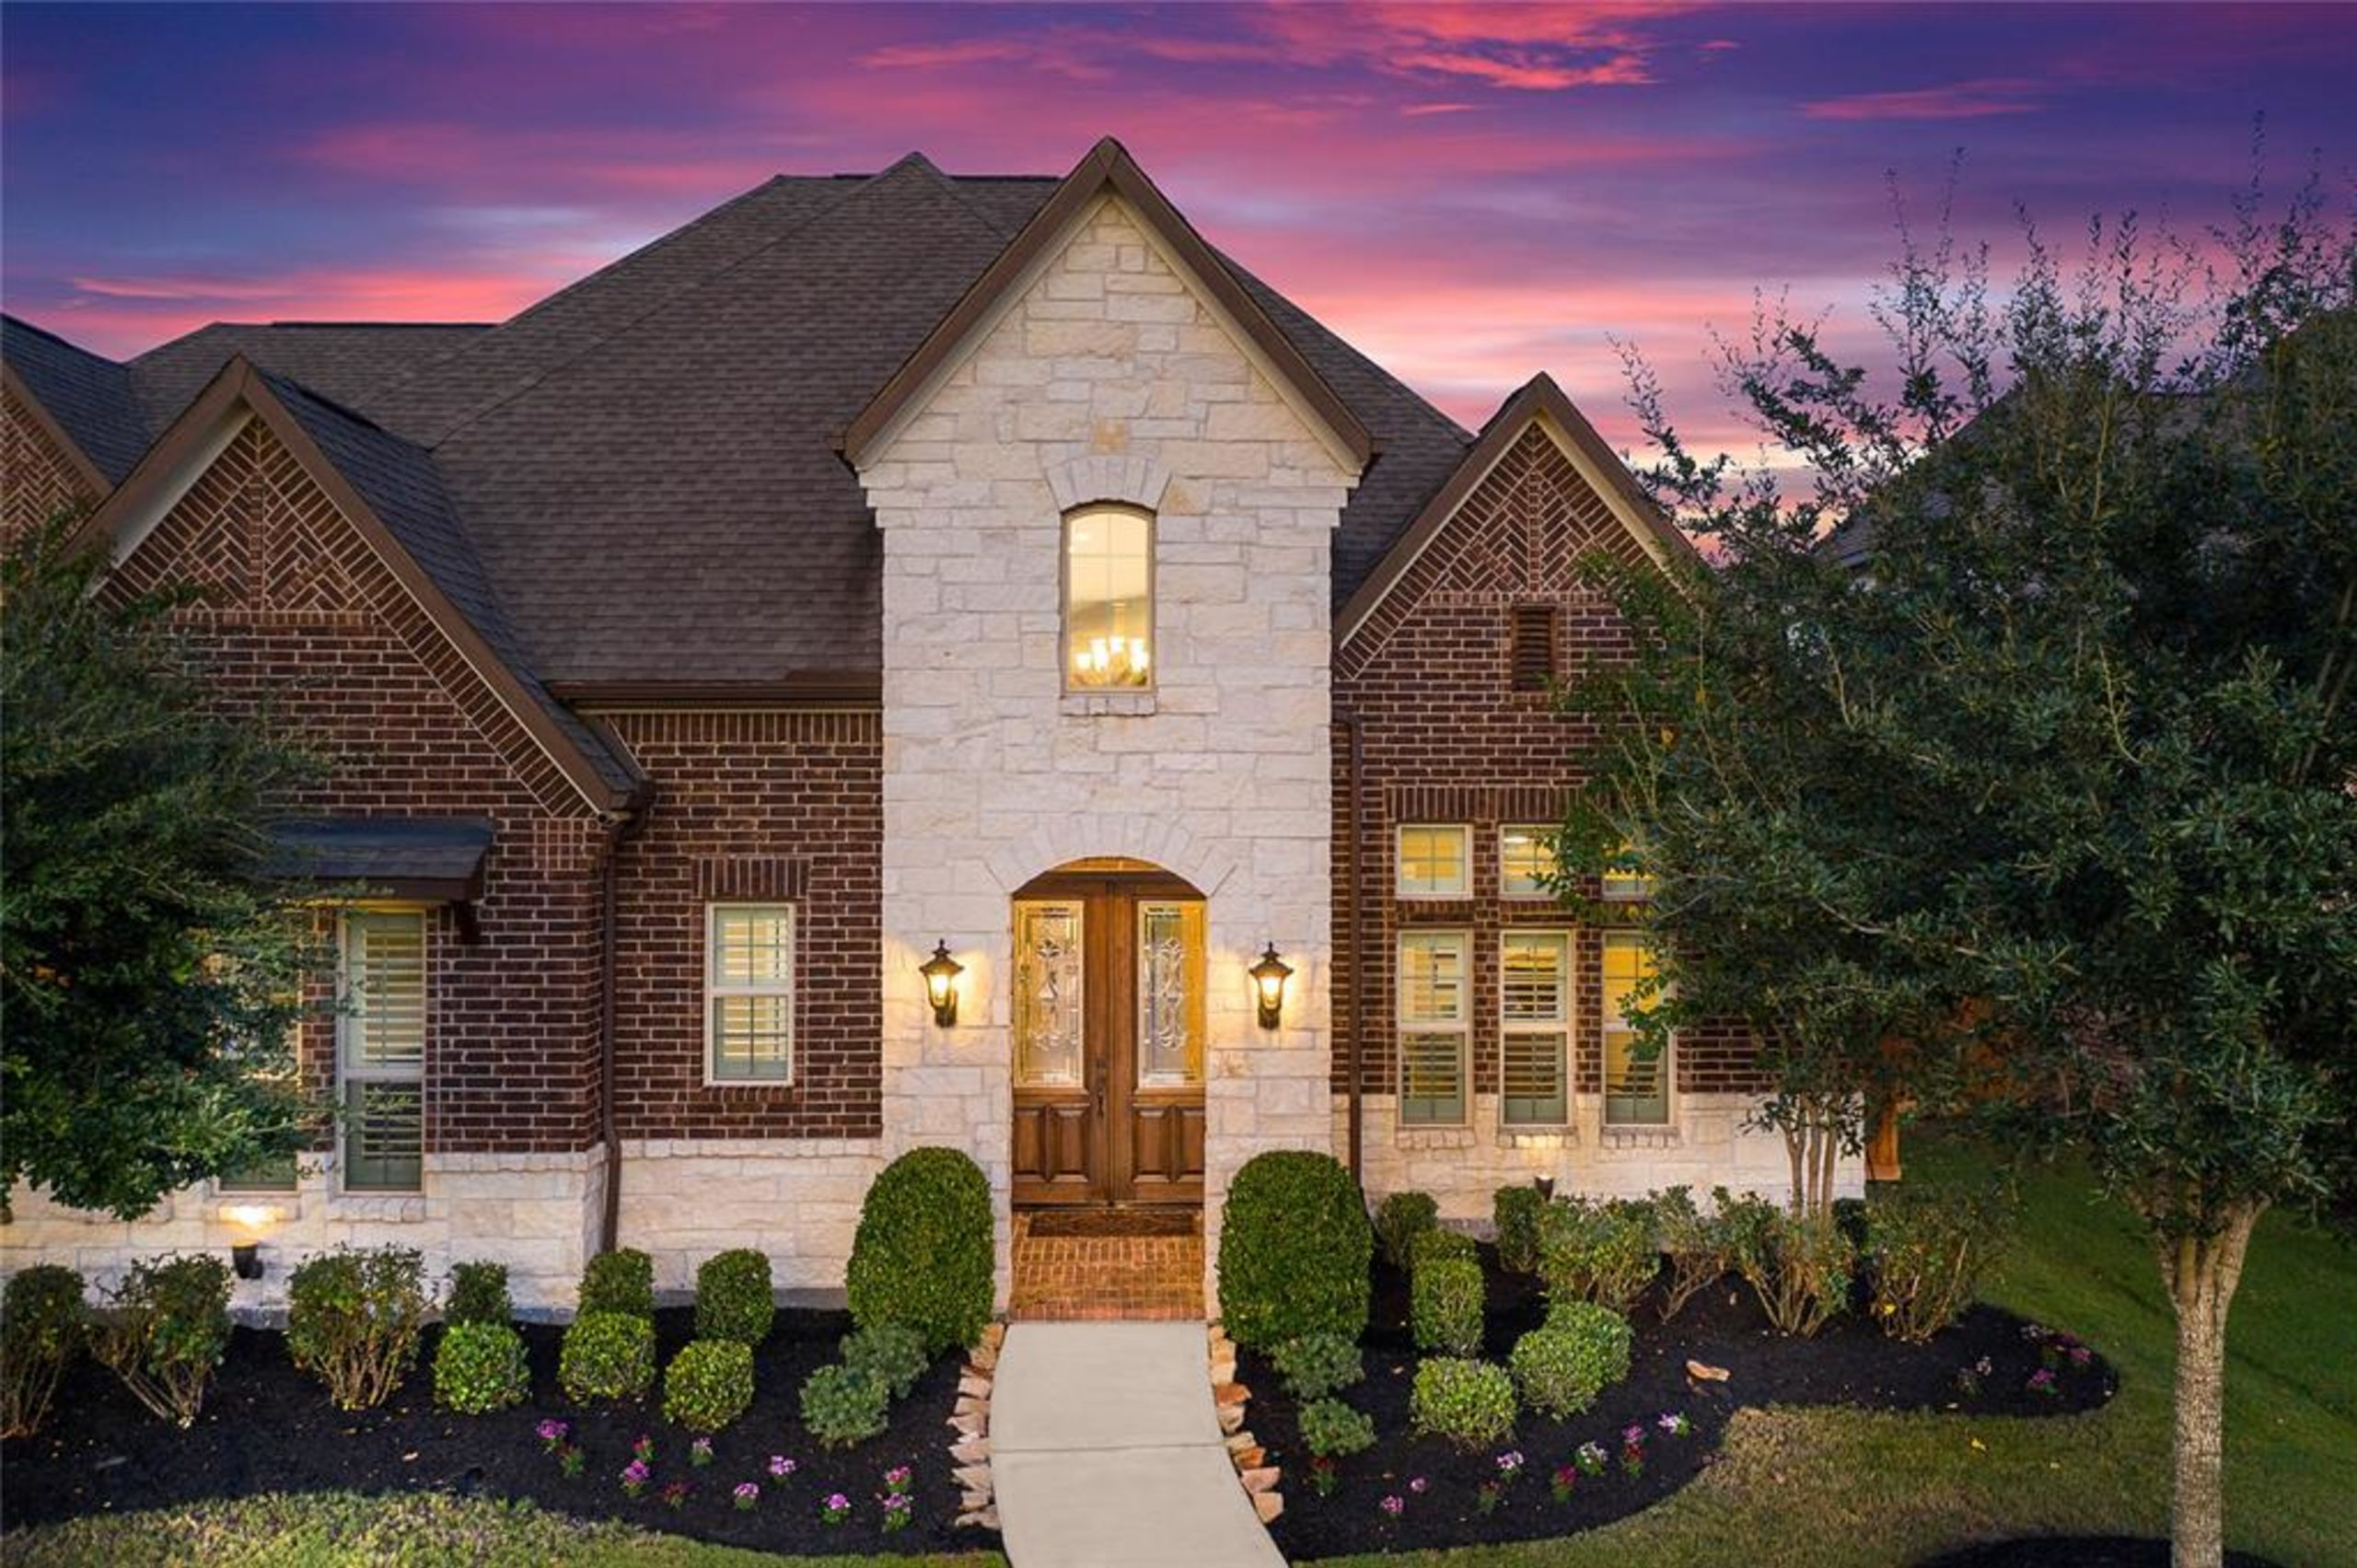 Towne Lake Coventry 5 Bedroom Home in Cypress, Texas